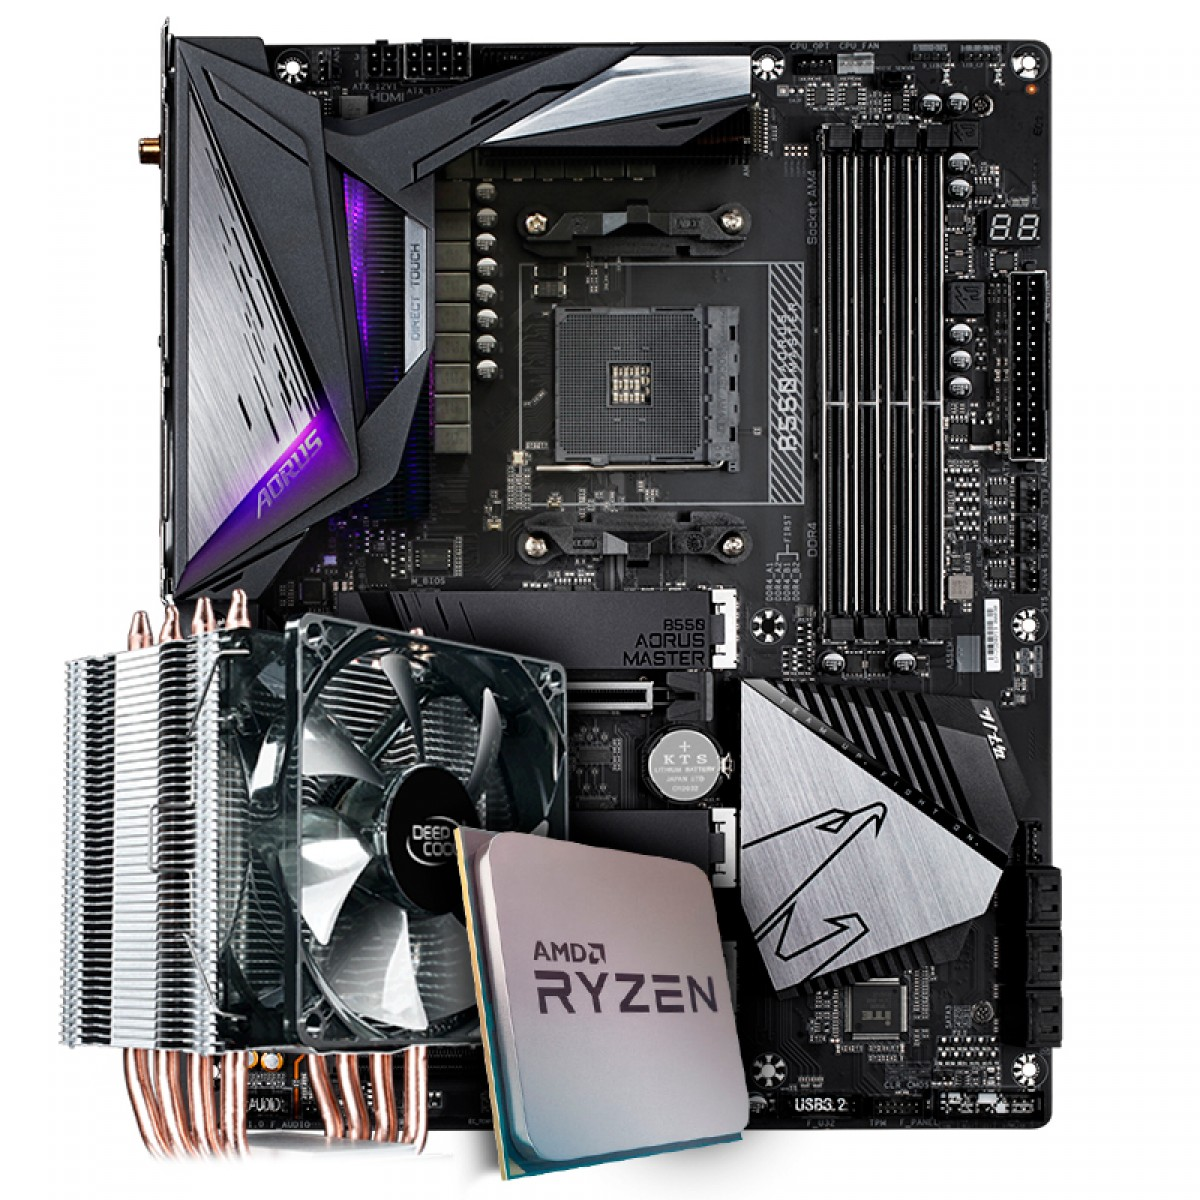 Kit Upgrade Placa Mãe Gigabyte B550 Aorus Master AMD AM4 + Processador AMD Ryzen 7 3800x 3.9GHz + Cooler Deepcool Gammaxx